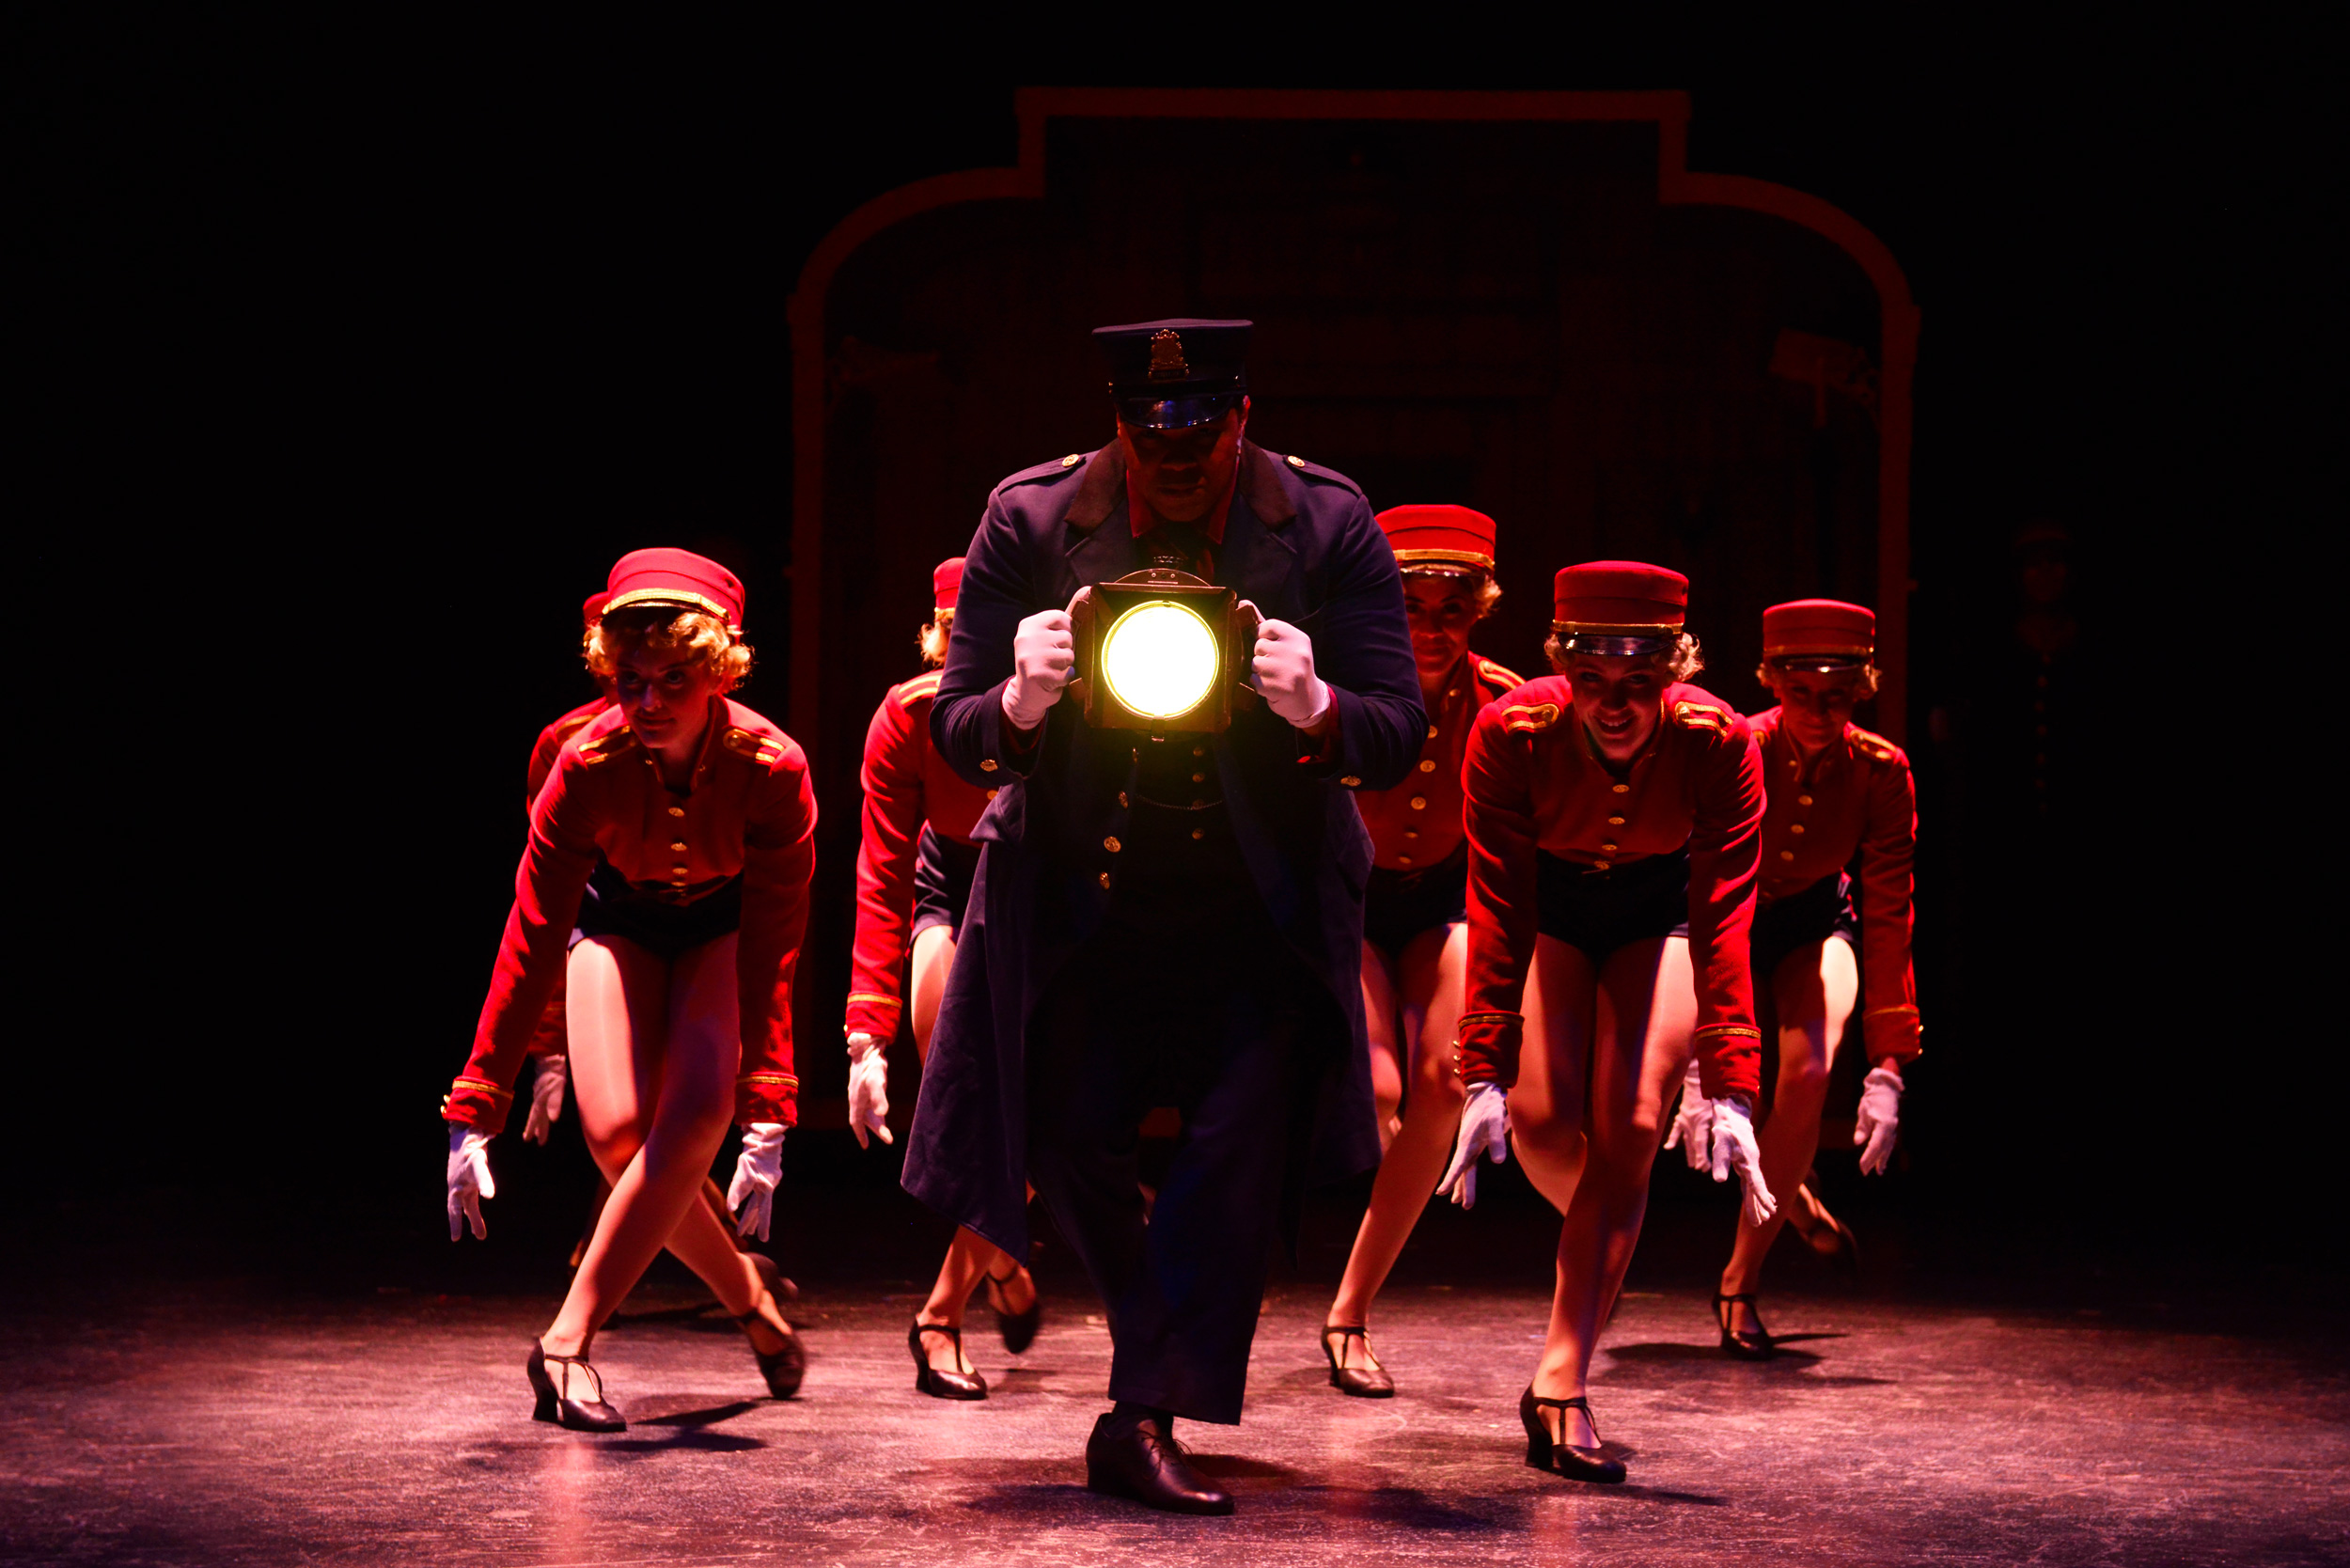 2017_Bullets-Over-Broadway_Vanessa-Mitchell_Will-Mann_Carissa-Fiorillo_Corinne-Munsch_Kelly-Peterson__photo-by_Gary-Ng_DSC7469.jpg